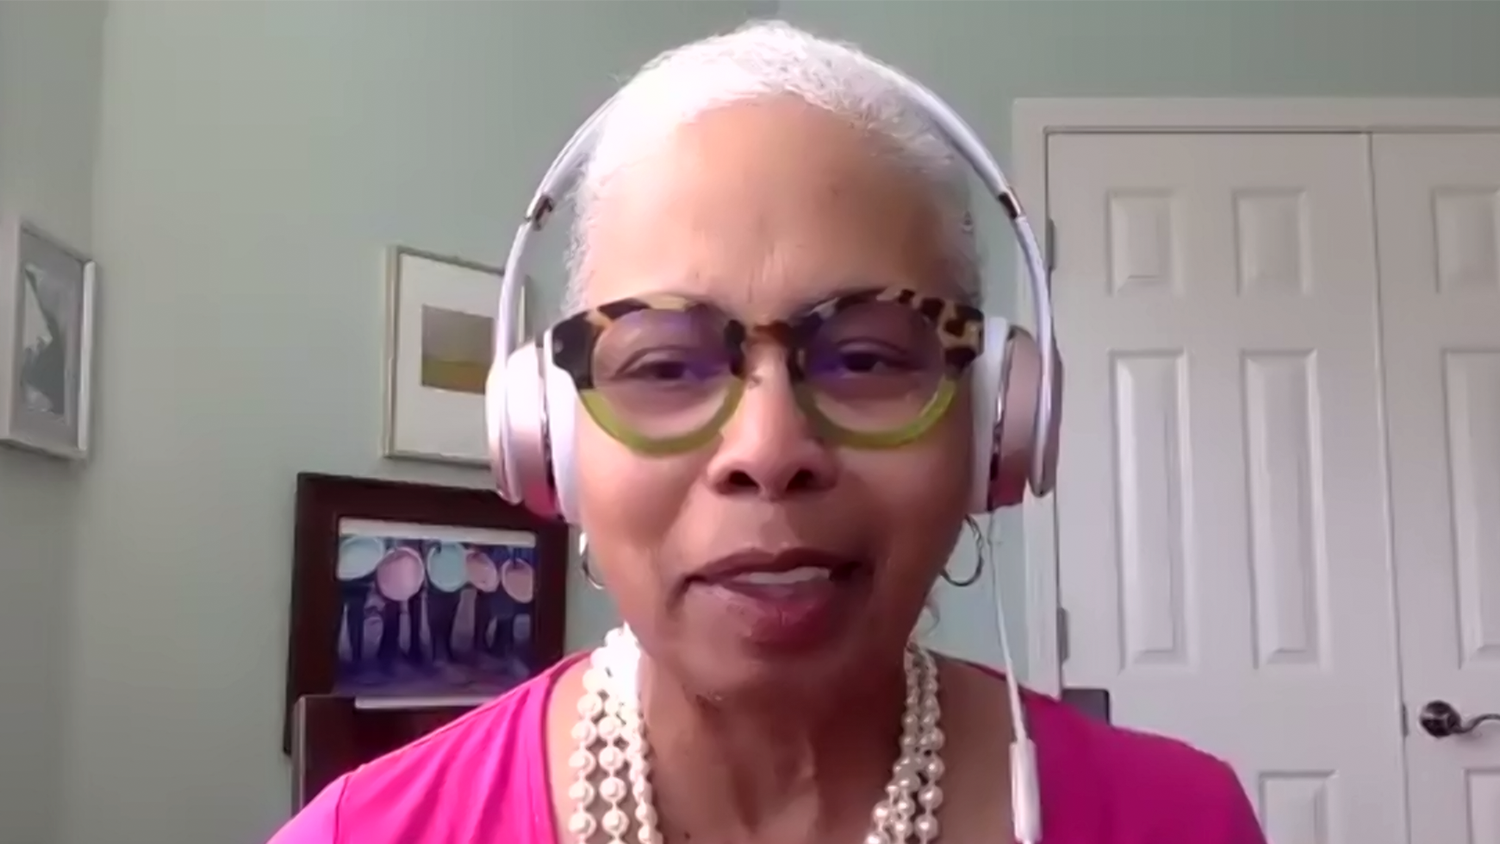 Gloria Ladson-Billings delivered the keynote address at the NC State College of Education's Don C. Locke Symposium on March 24, 2021